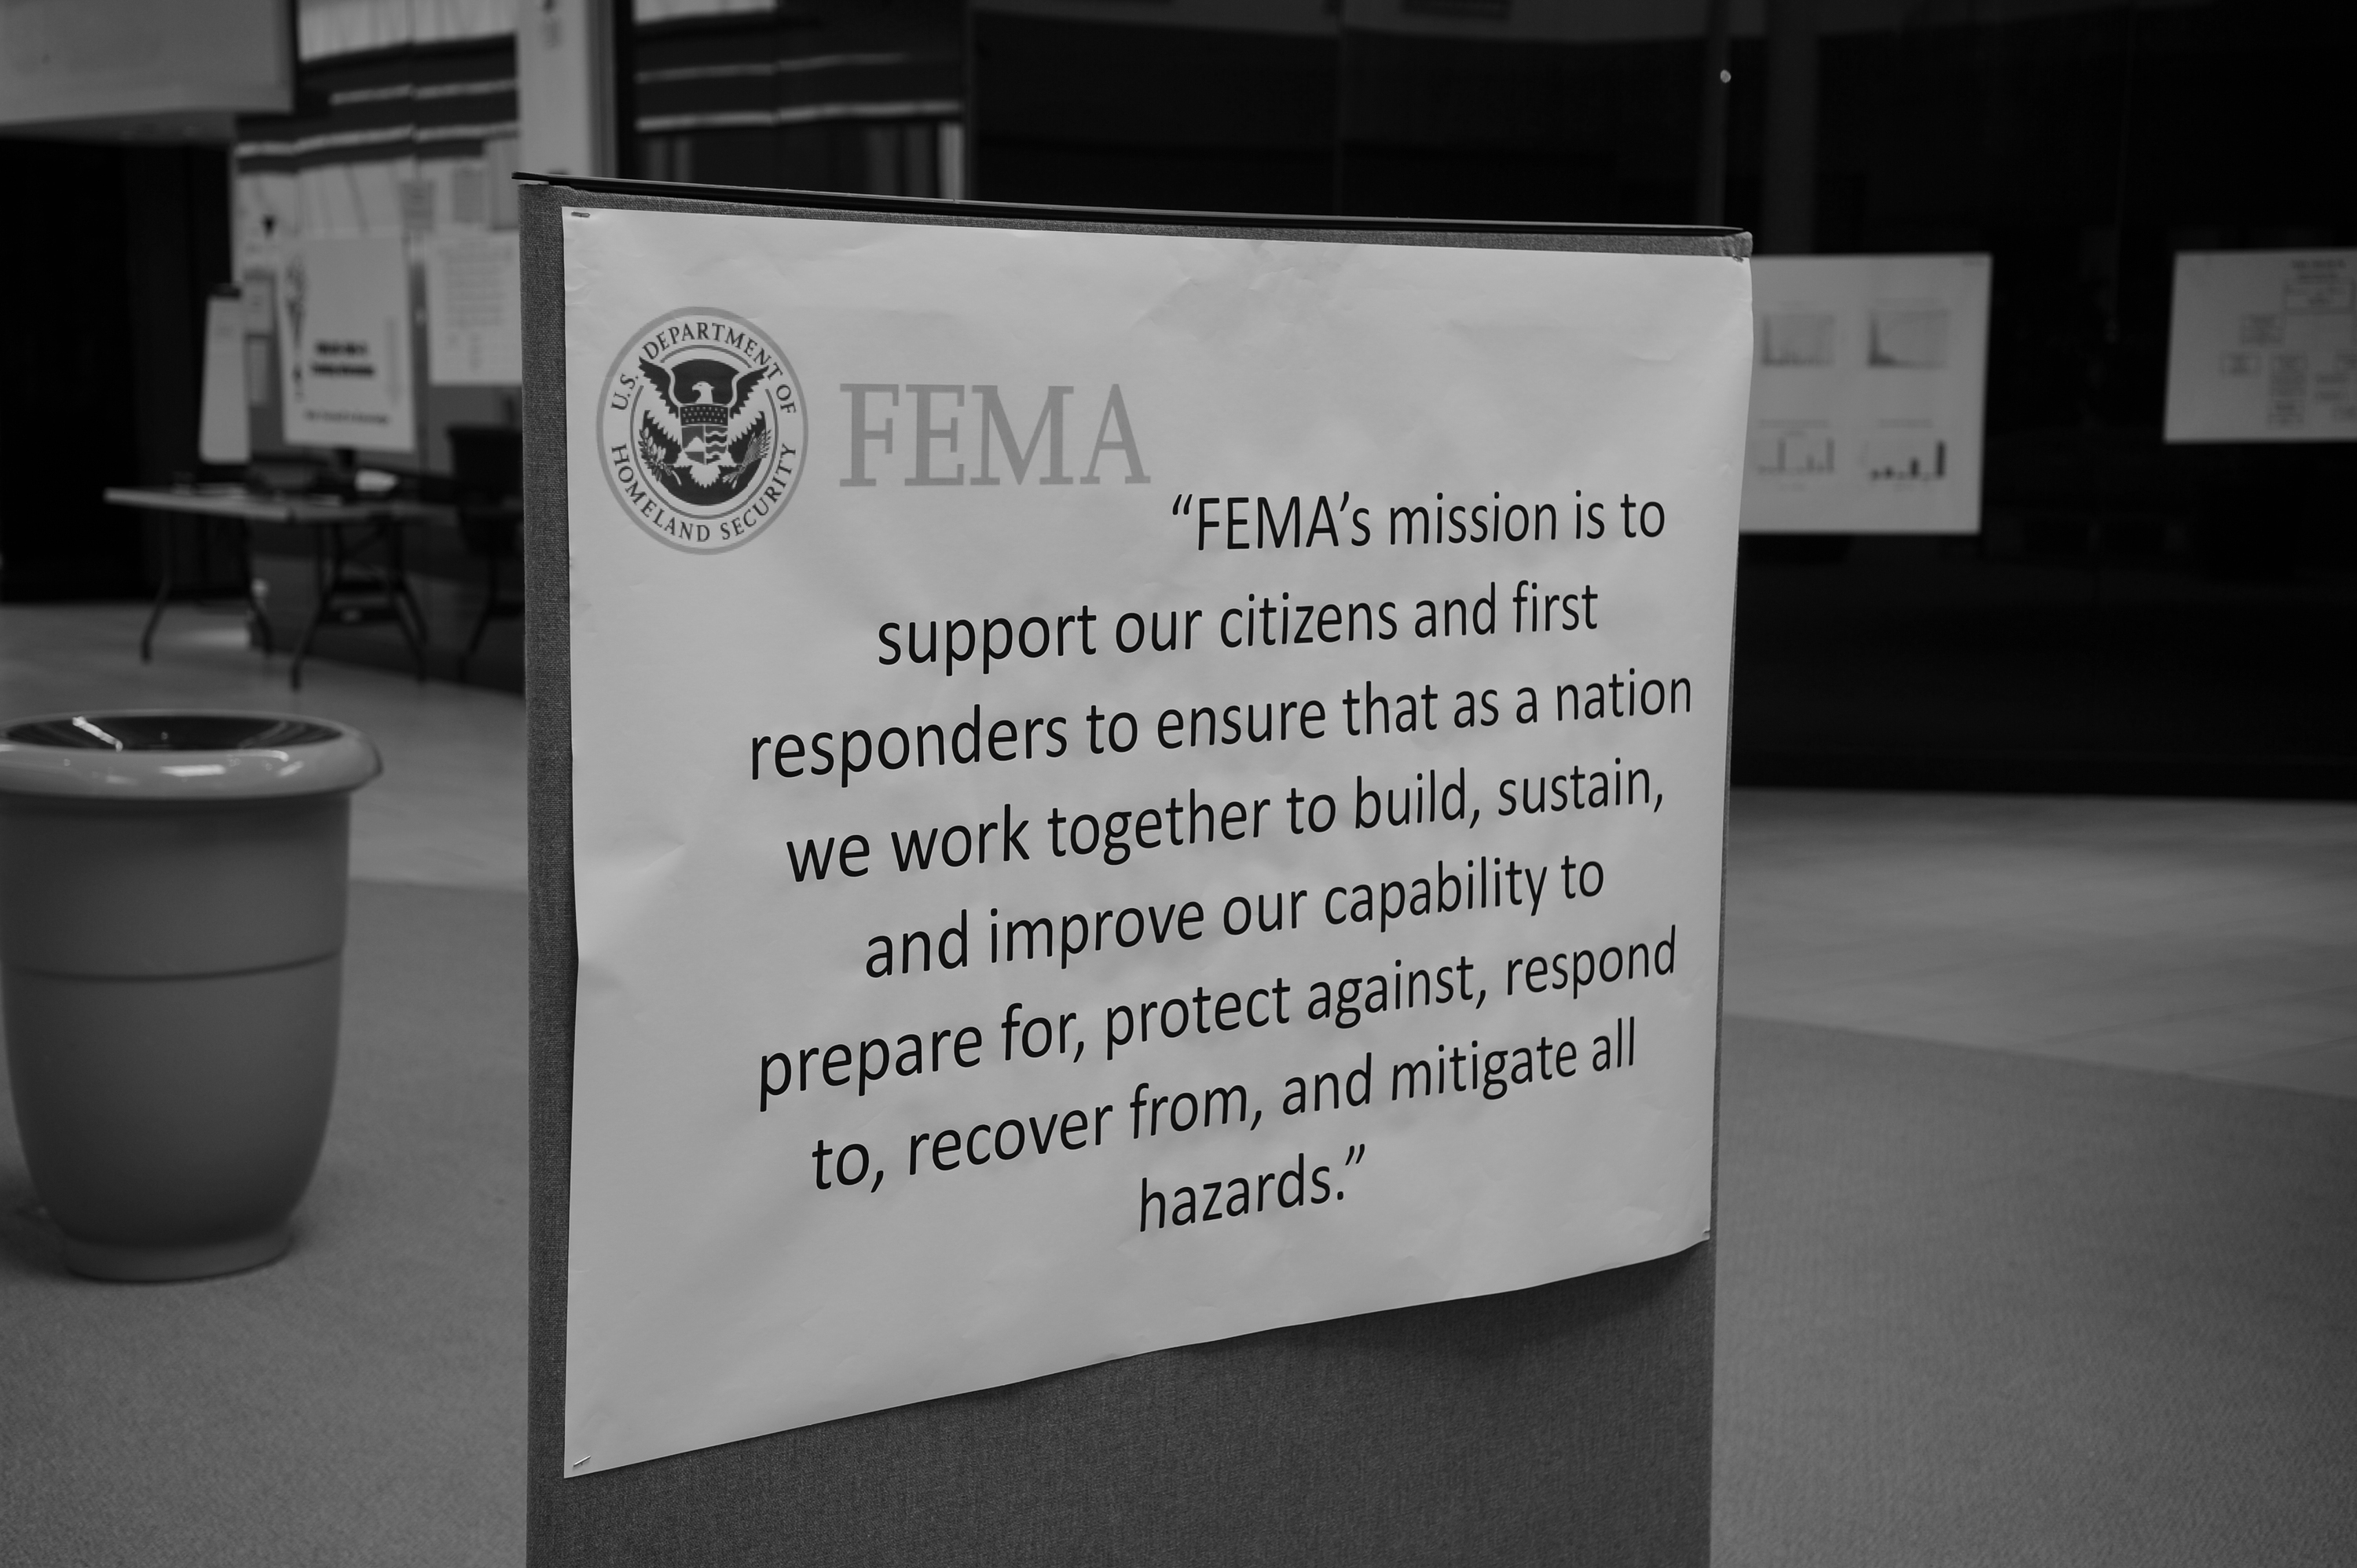 Federal emergency management agency wikipedia autos post for Kia motors mission statement